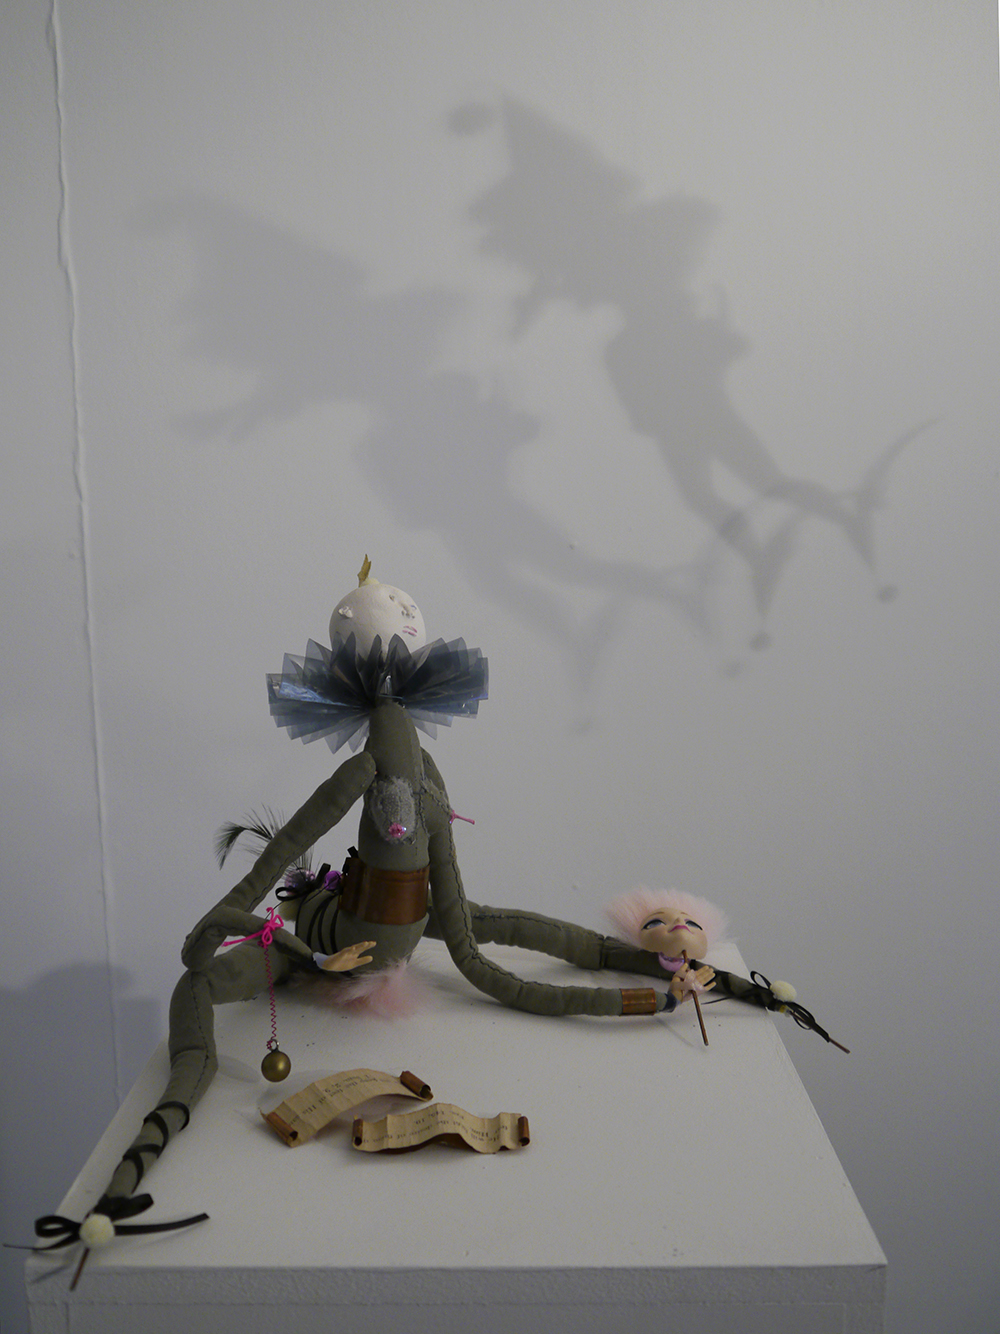 edinburgh college of art, masters degree show 2016, young artist Scotland, contemporary scottish art, ECA, Edinburgh Collage of art, doll, weird doll, 3d art